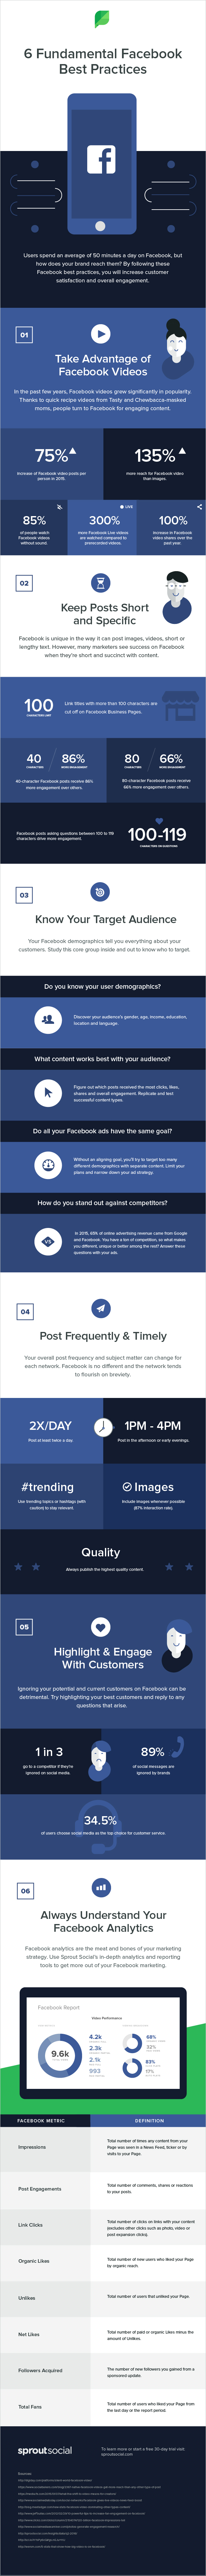 a-beginners-guide-to-marketing-on-facebook-6-fundamental-best-practices